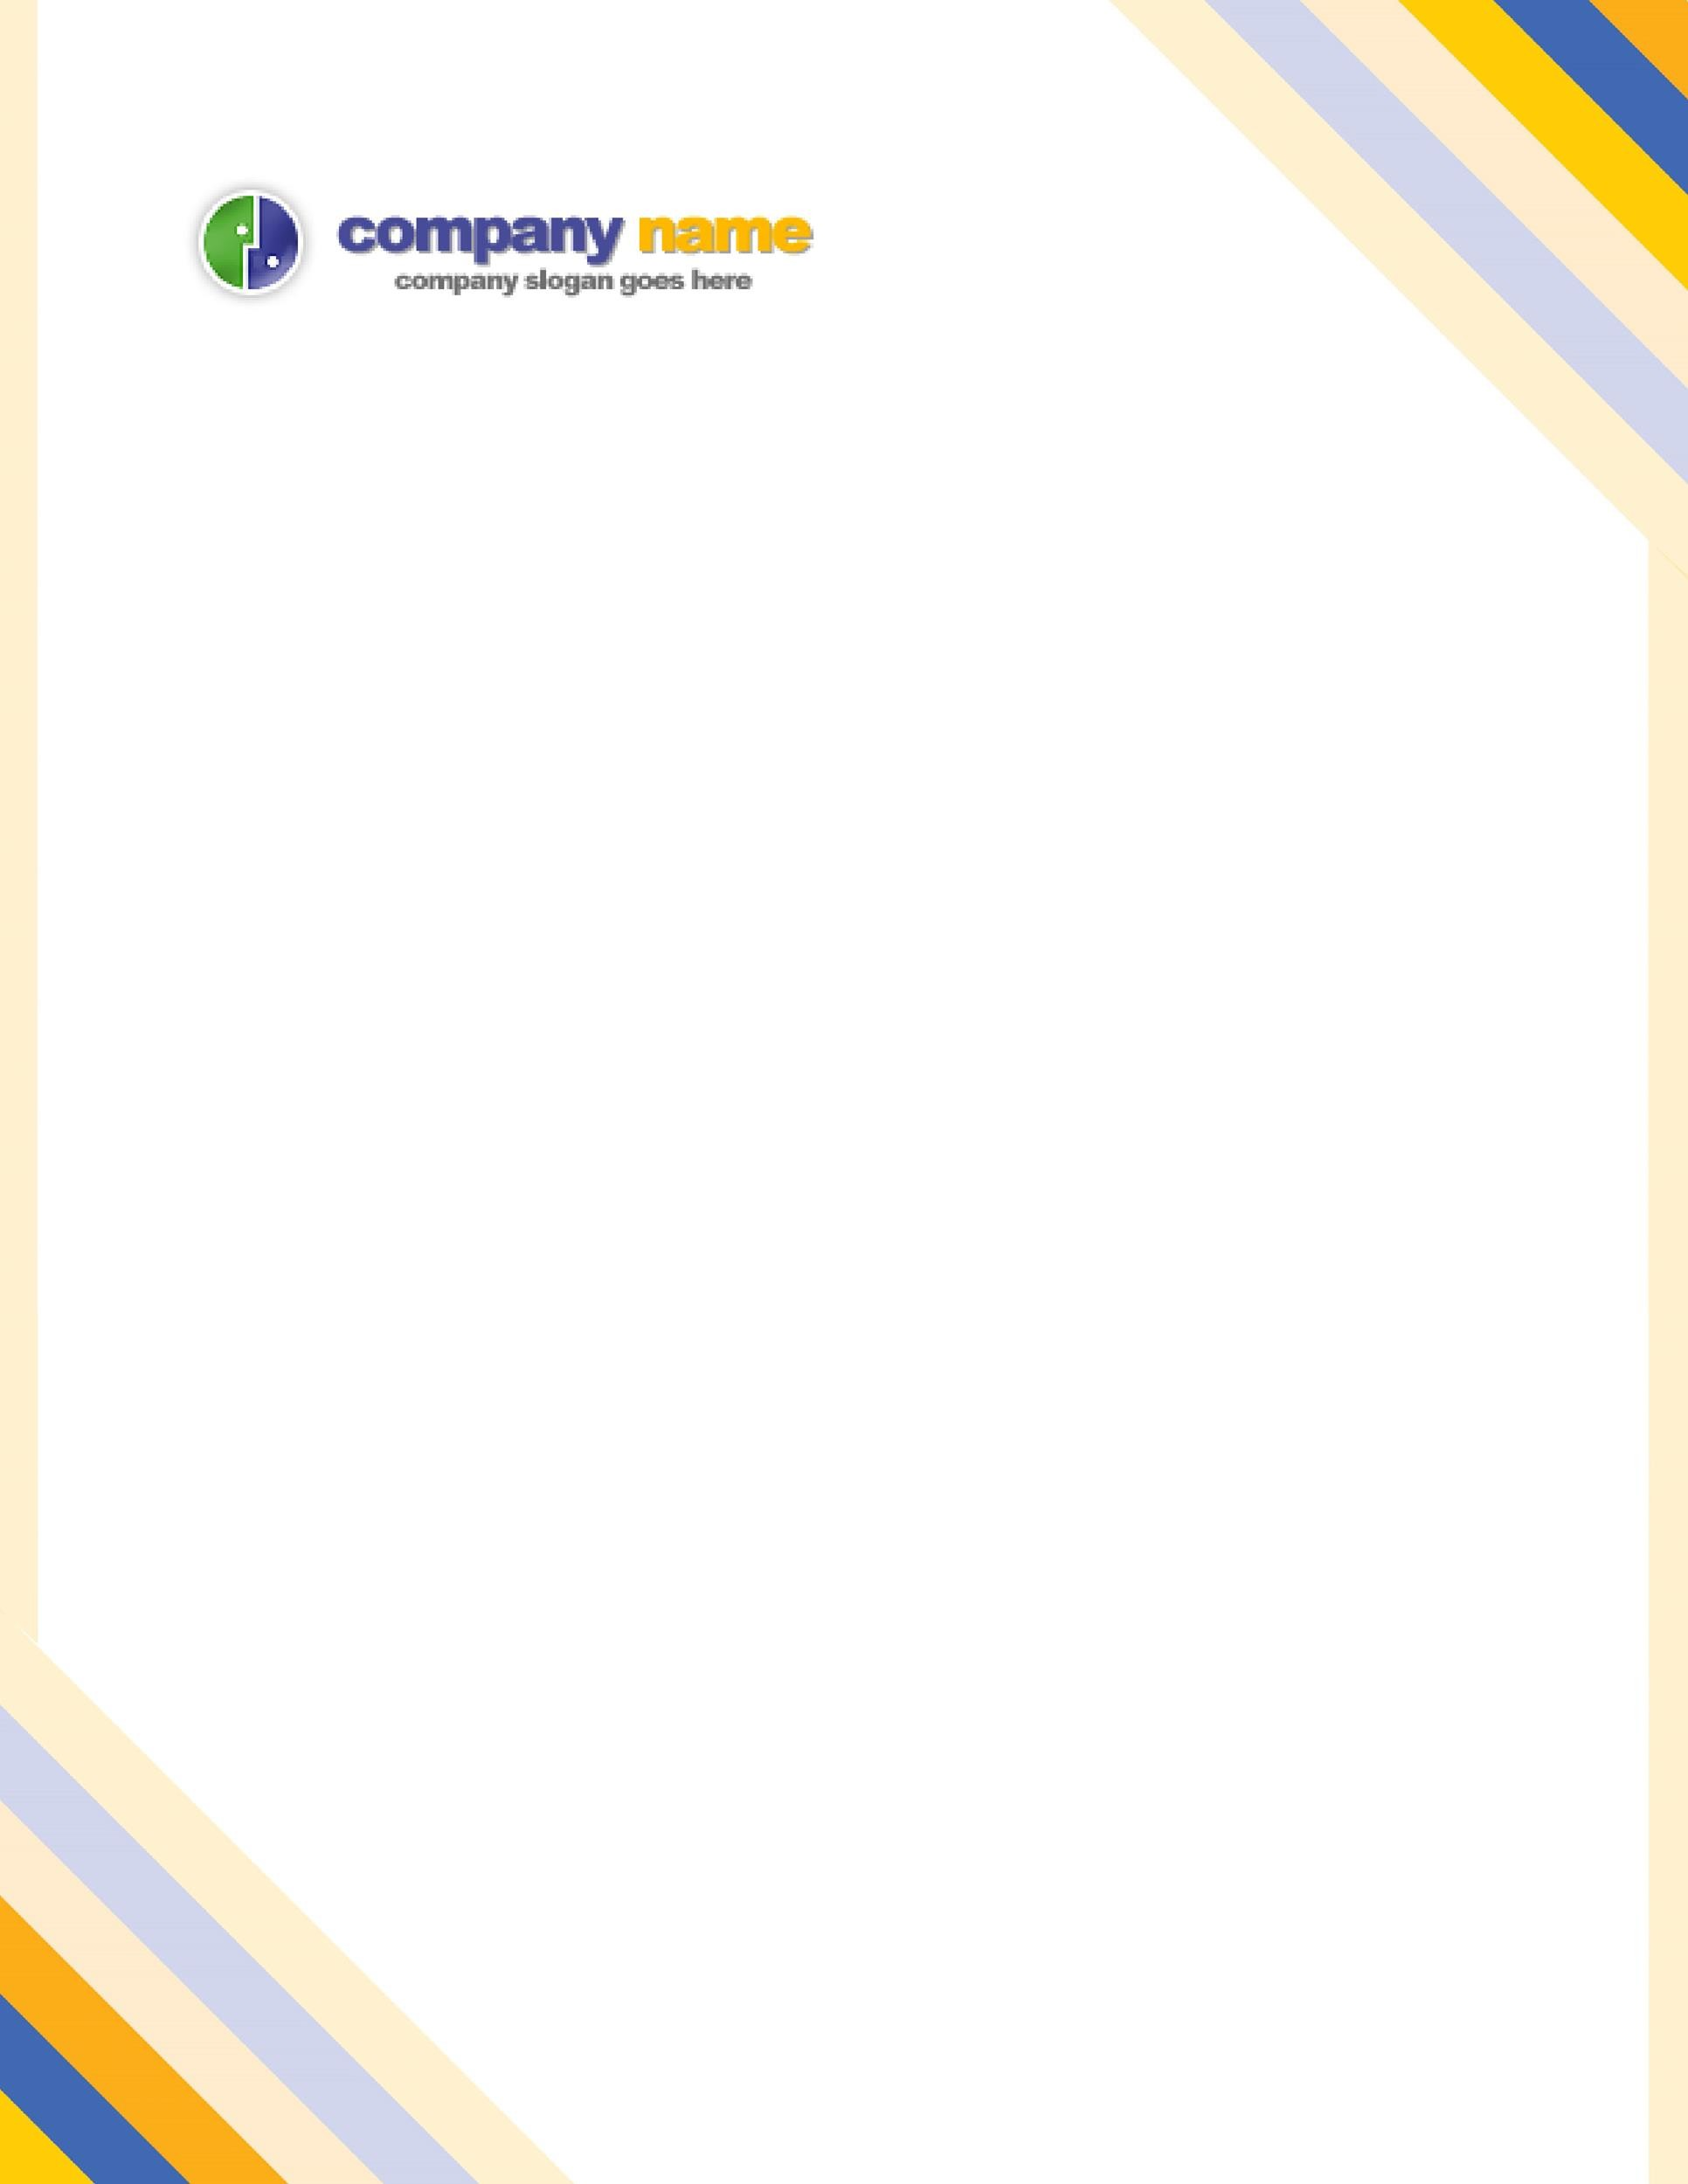 Printable Letterhead Template 21 On Free Company Letterhead